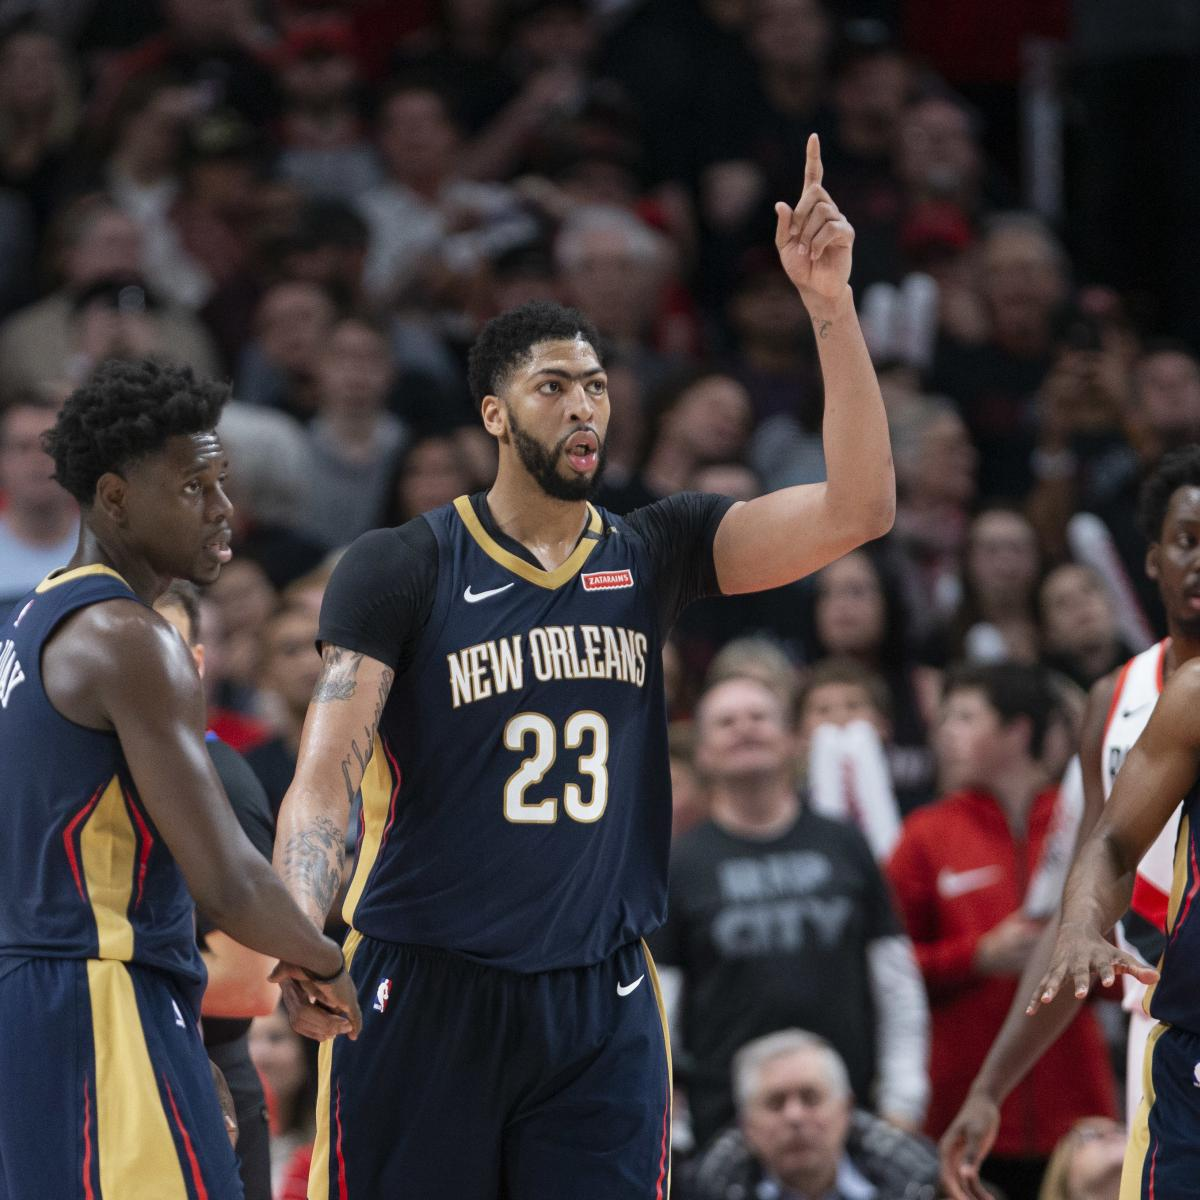 Portland Trail Blazers Injury News: How Anthony Davis, Pelicans Defied Expectations After